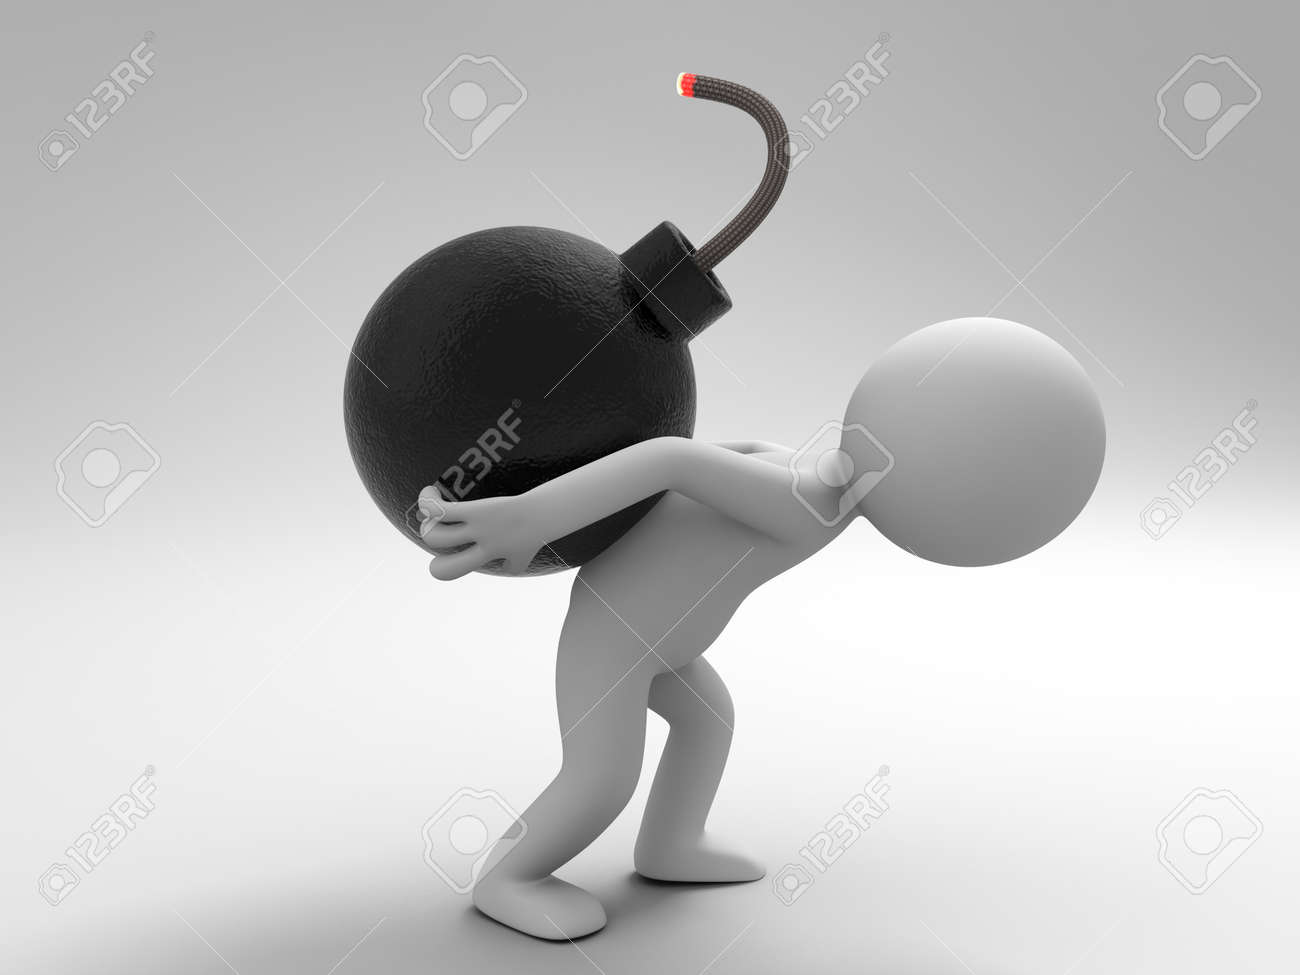 Bomb Crisis a people is carrying a bomb with difficulty Stock Photo - 15448323